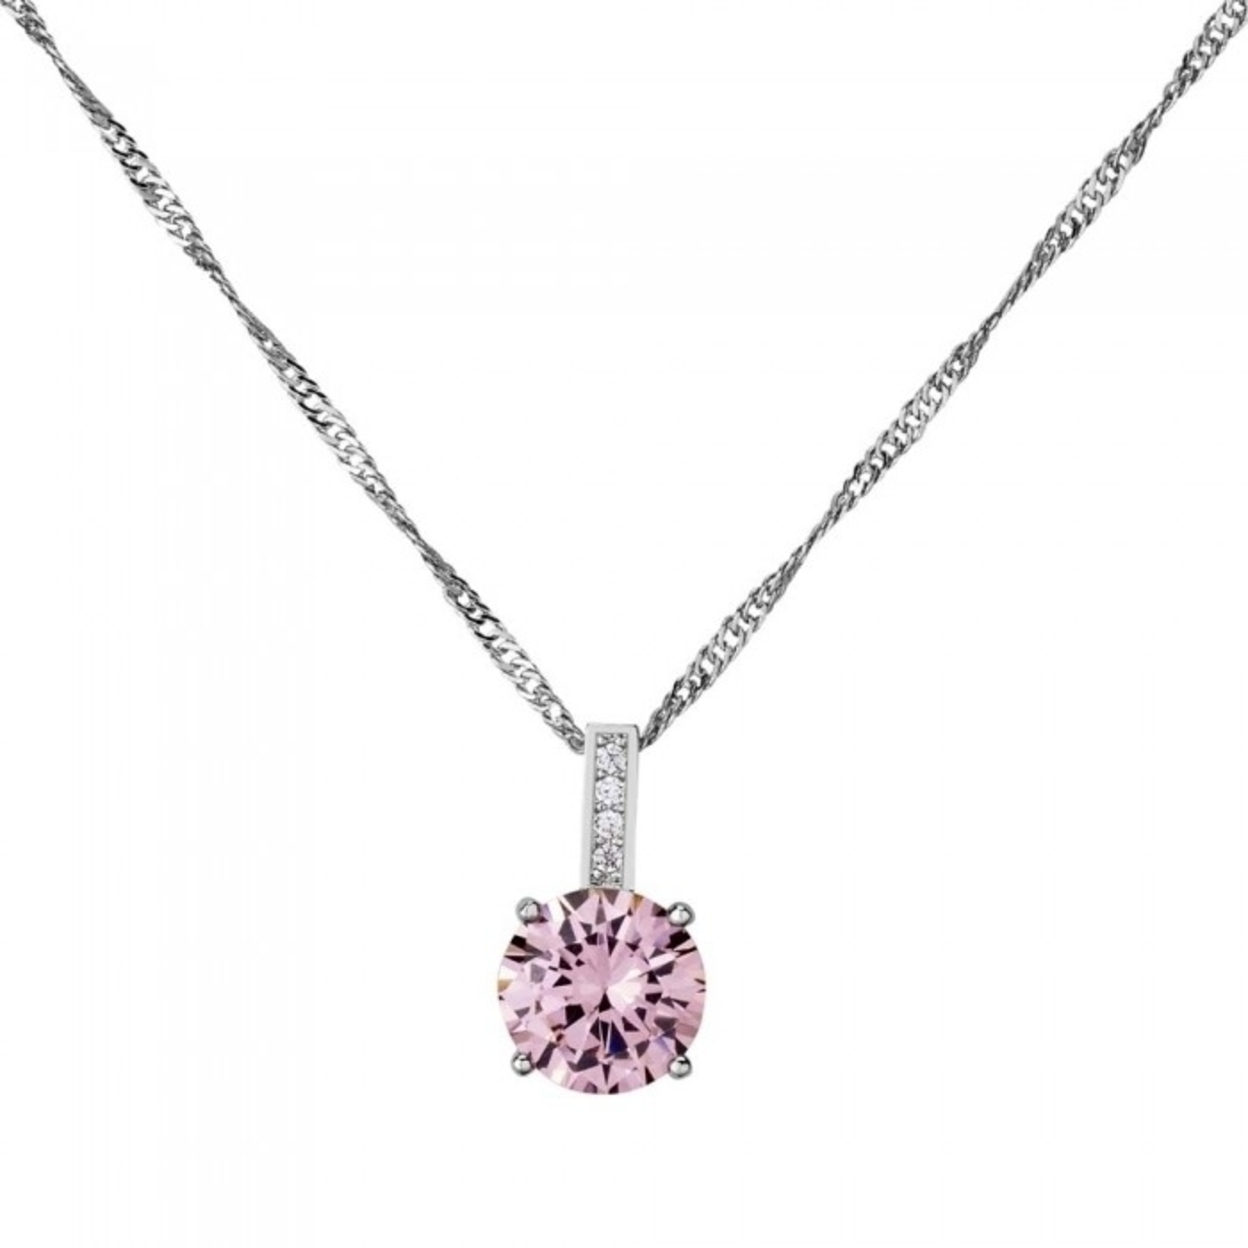 2.33 Carat Brilliant Cut Pink Sapphire 10k White Gold Filled Pendant